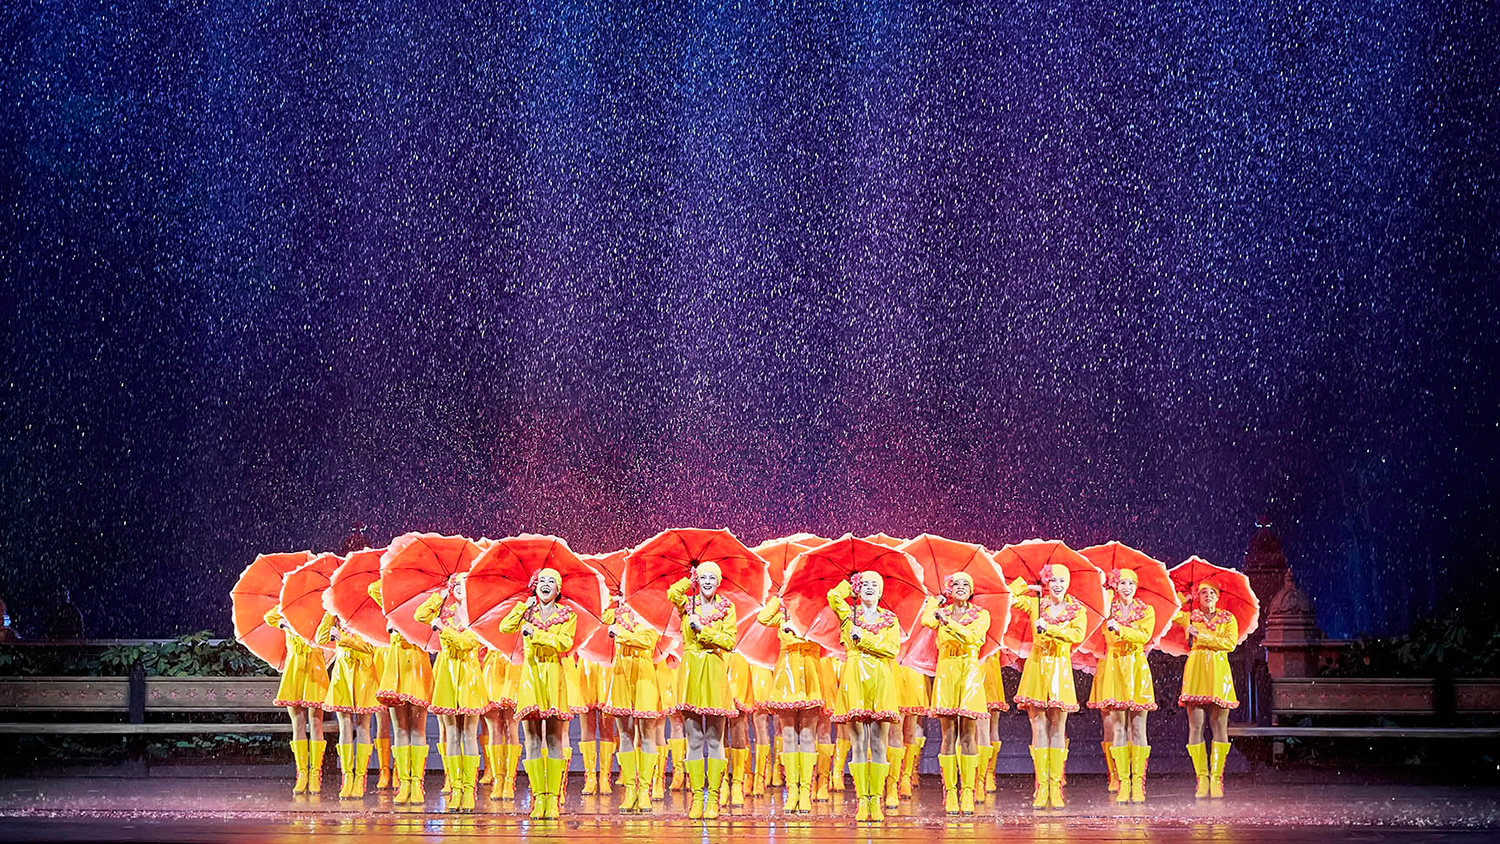 Review: New York Spectacular at Radio City Music Hall